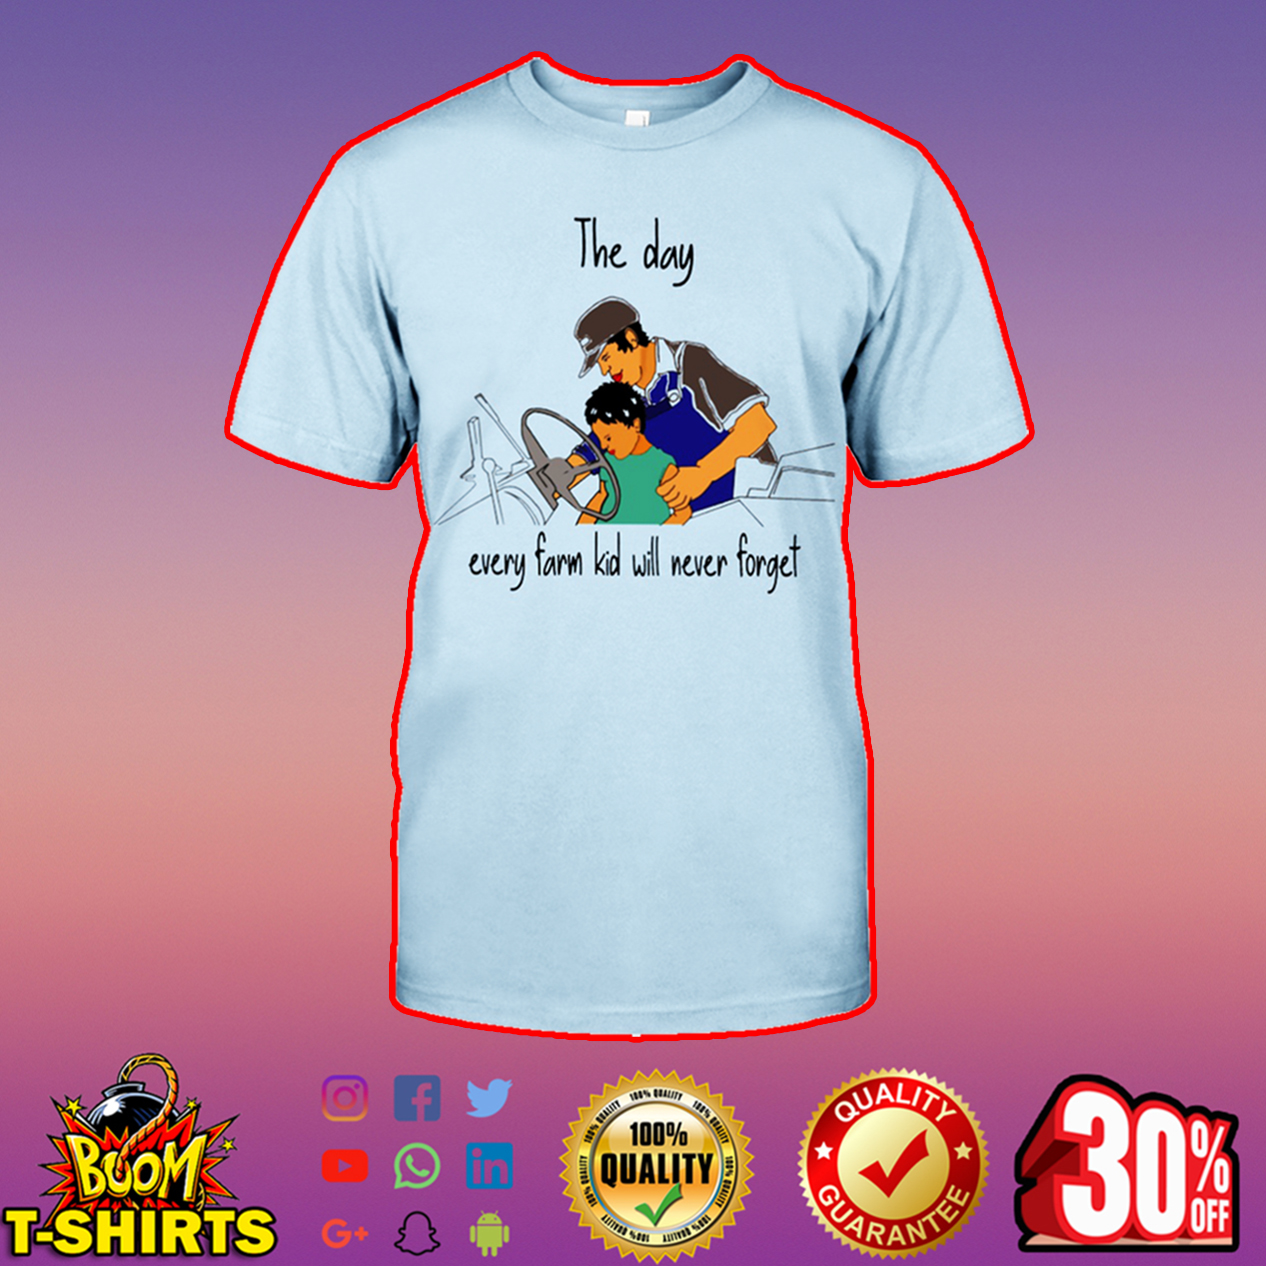 The day every farm kid will never forget t-shirt